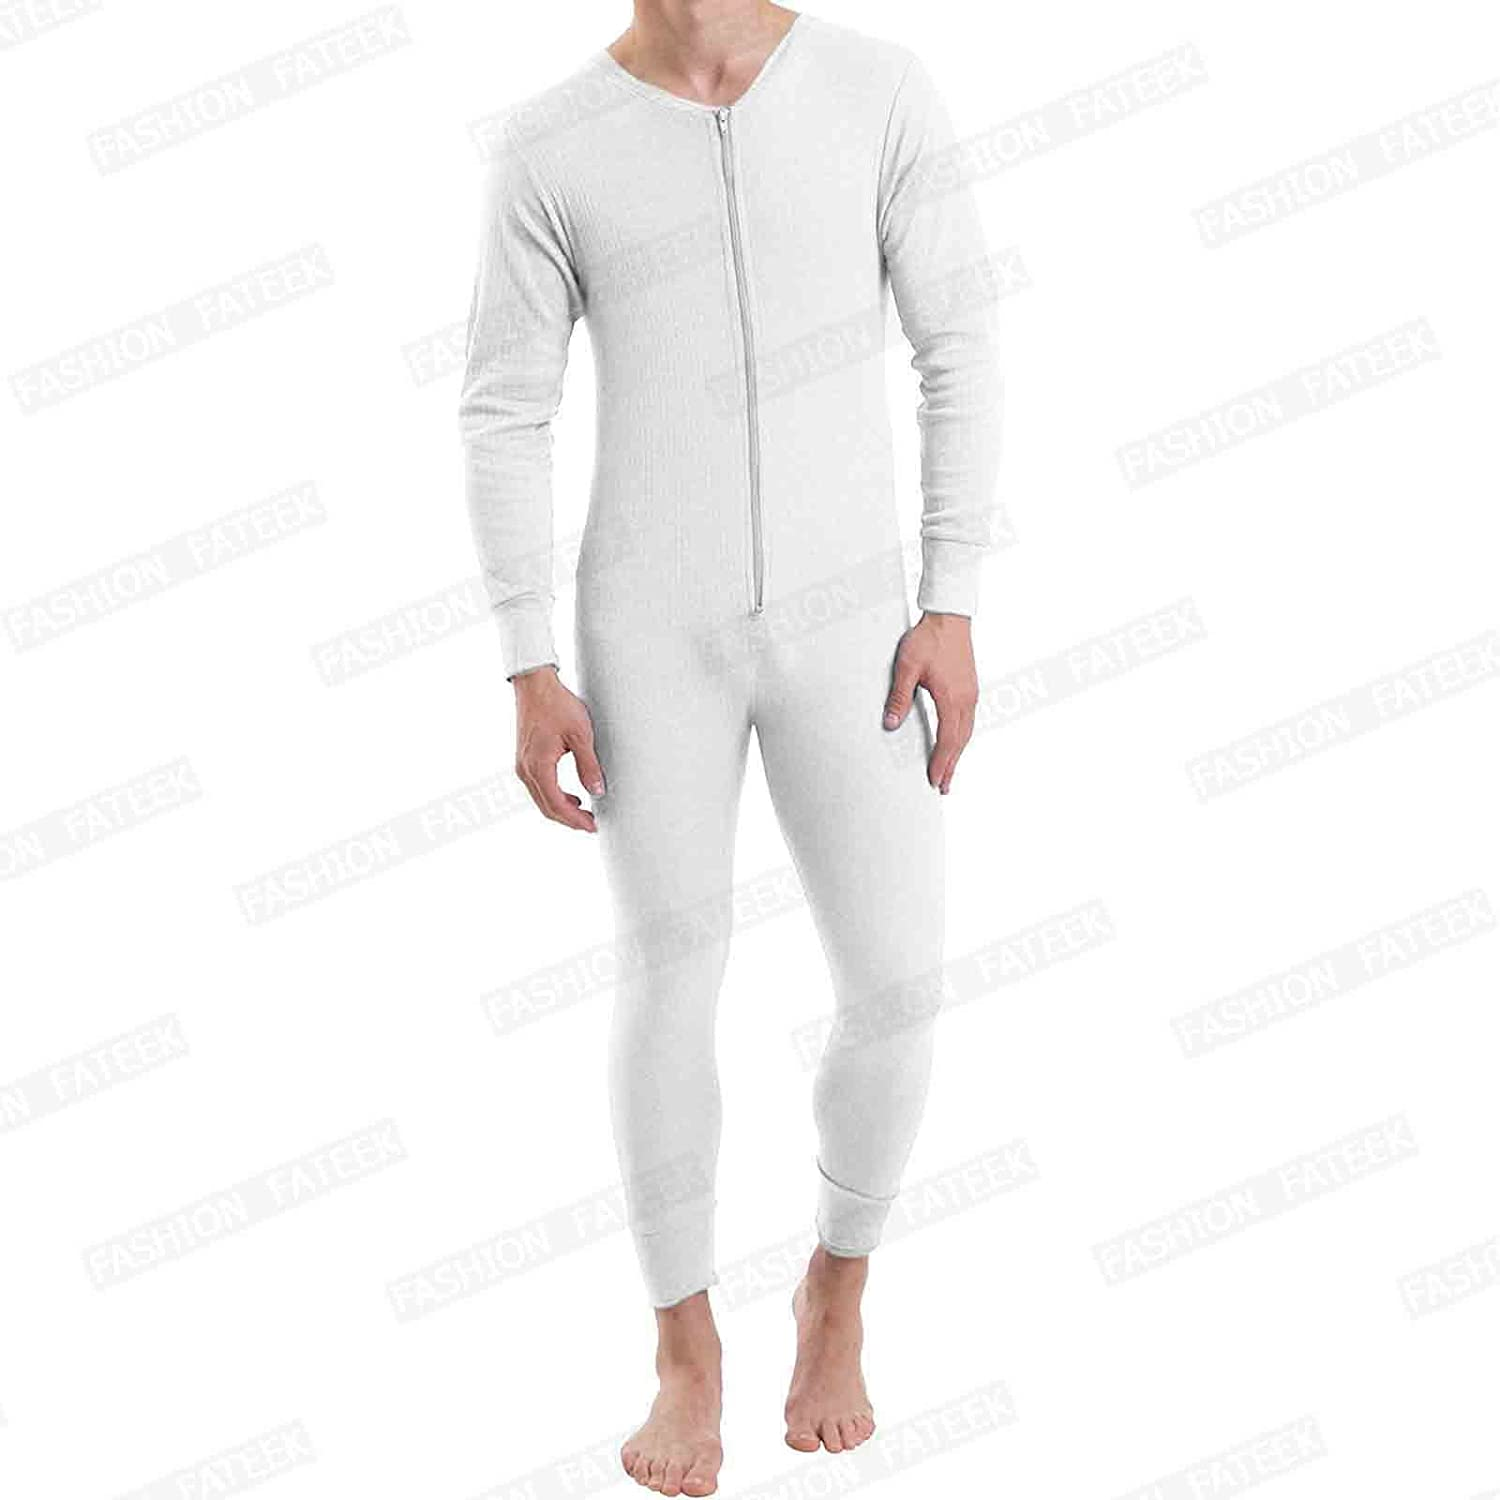 All In One Thermal Underwear Boiler/Union Suit, Various Sizes ...